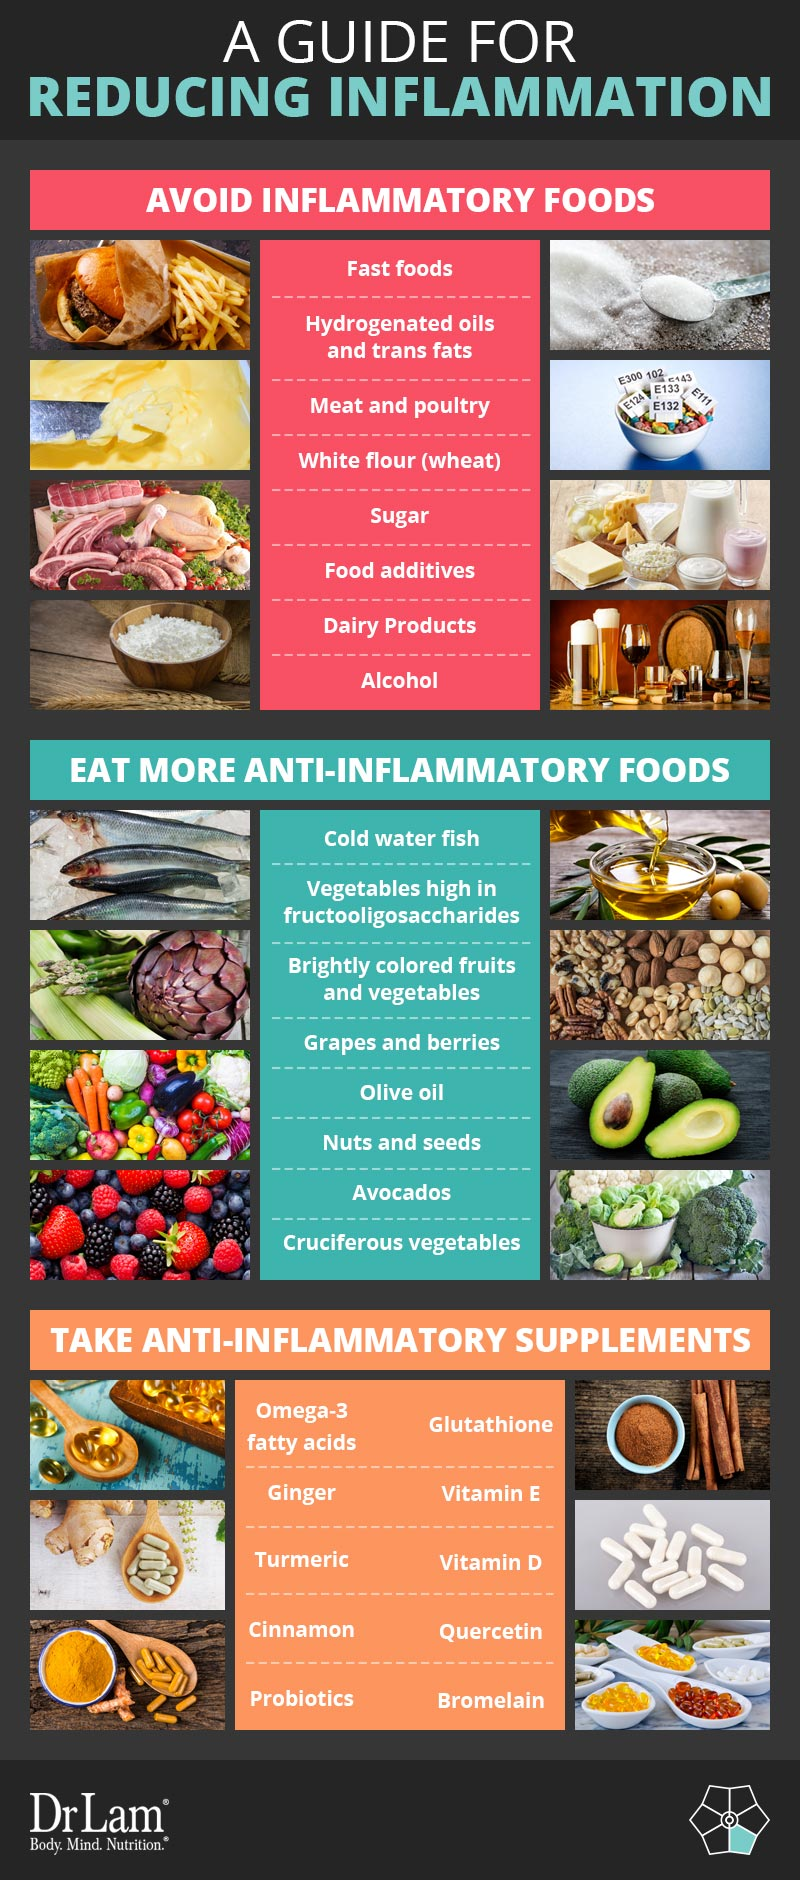 Check out this easy to understand infographic about inflammatory foods, anti-infammatory foods and supplements